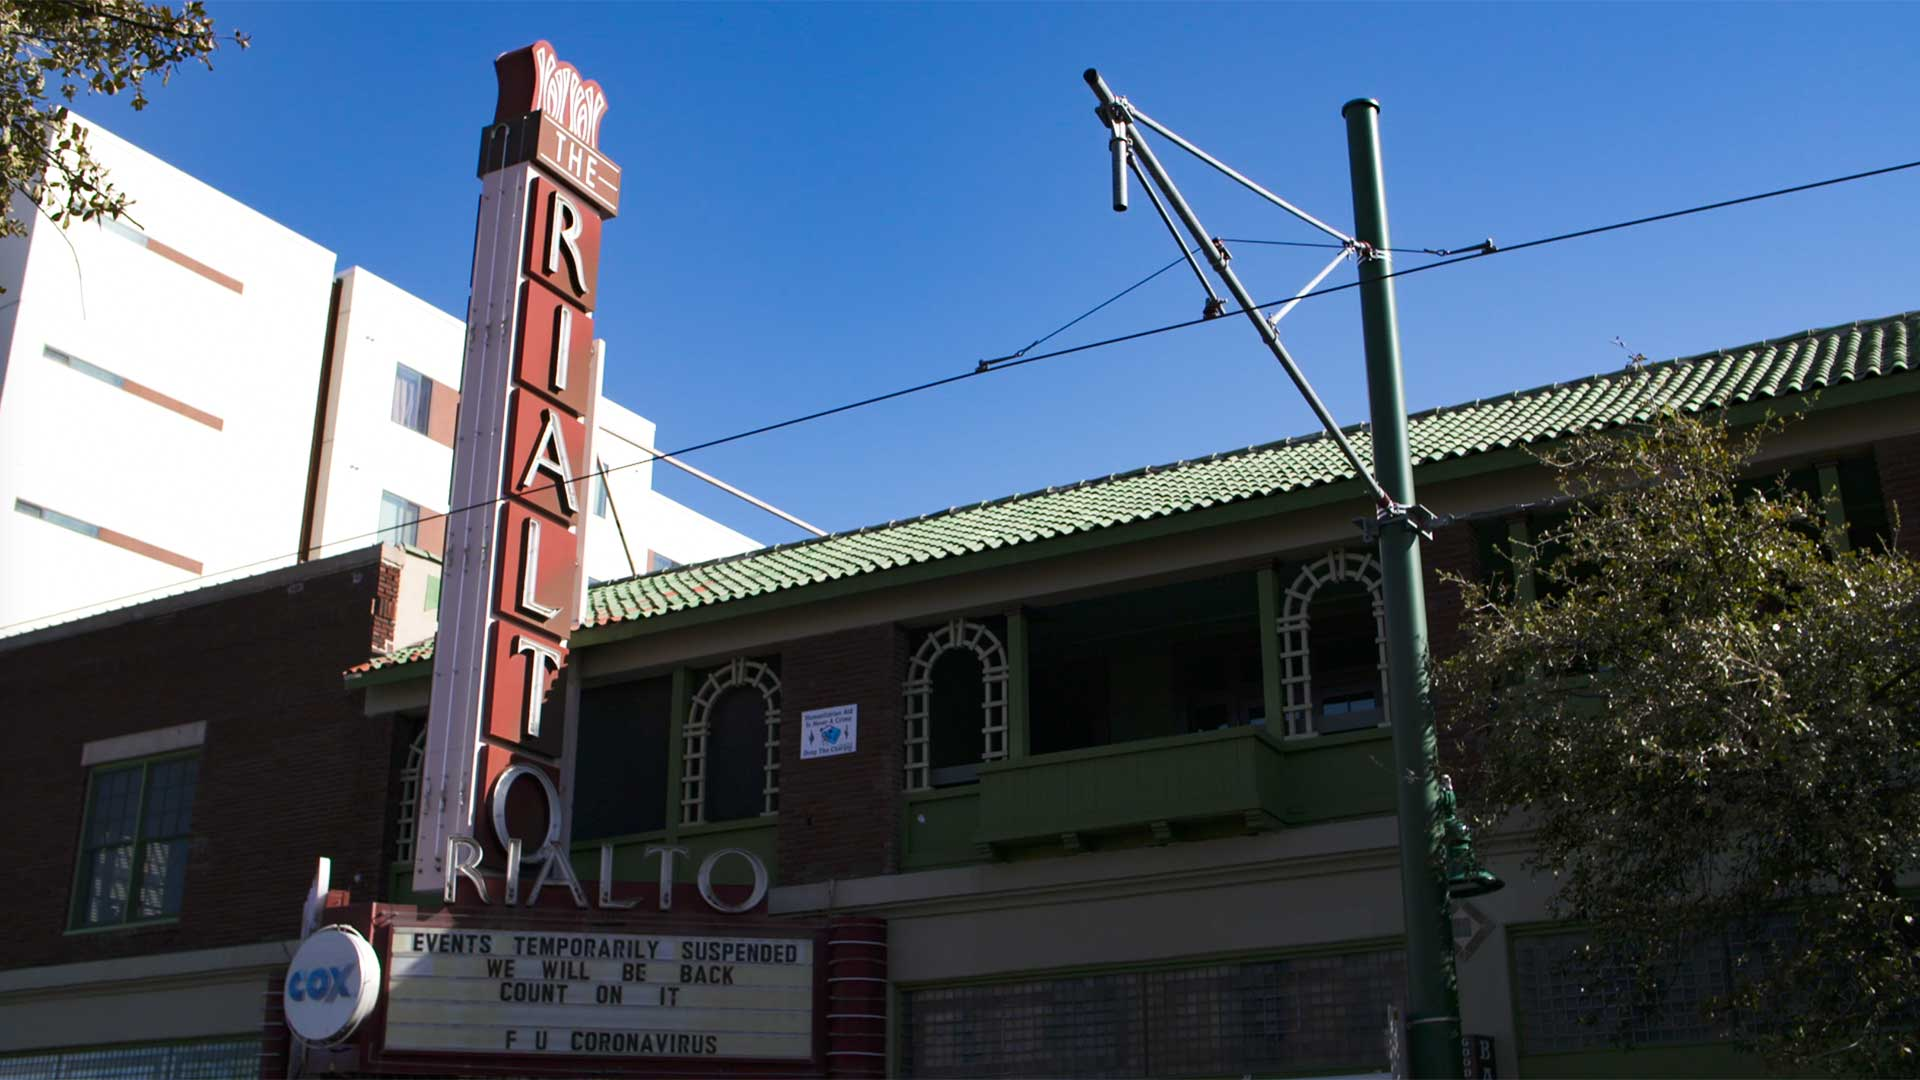 The Rialto Theatre on March 17, when Tucson declared a local emergency in response to the COVID-19 pandemic.